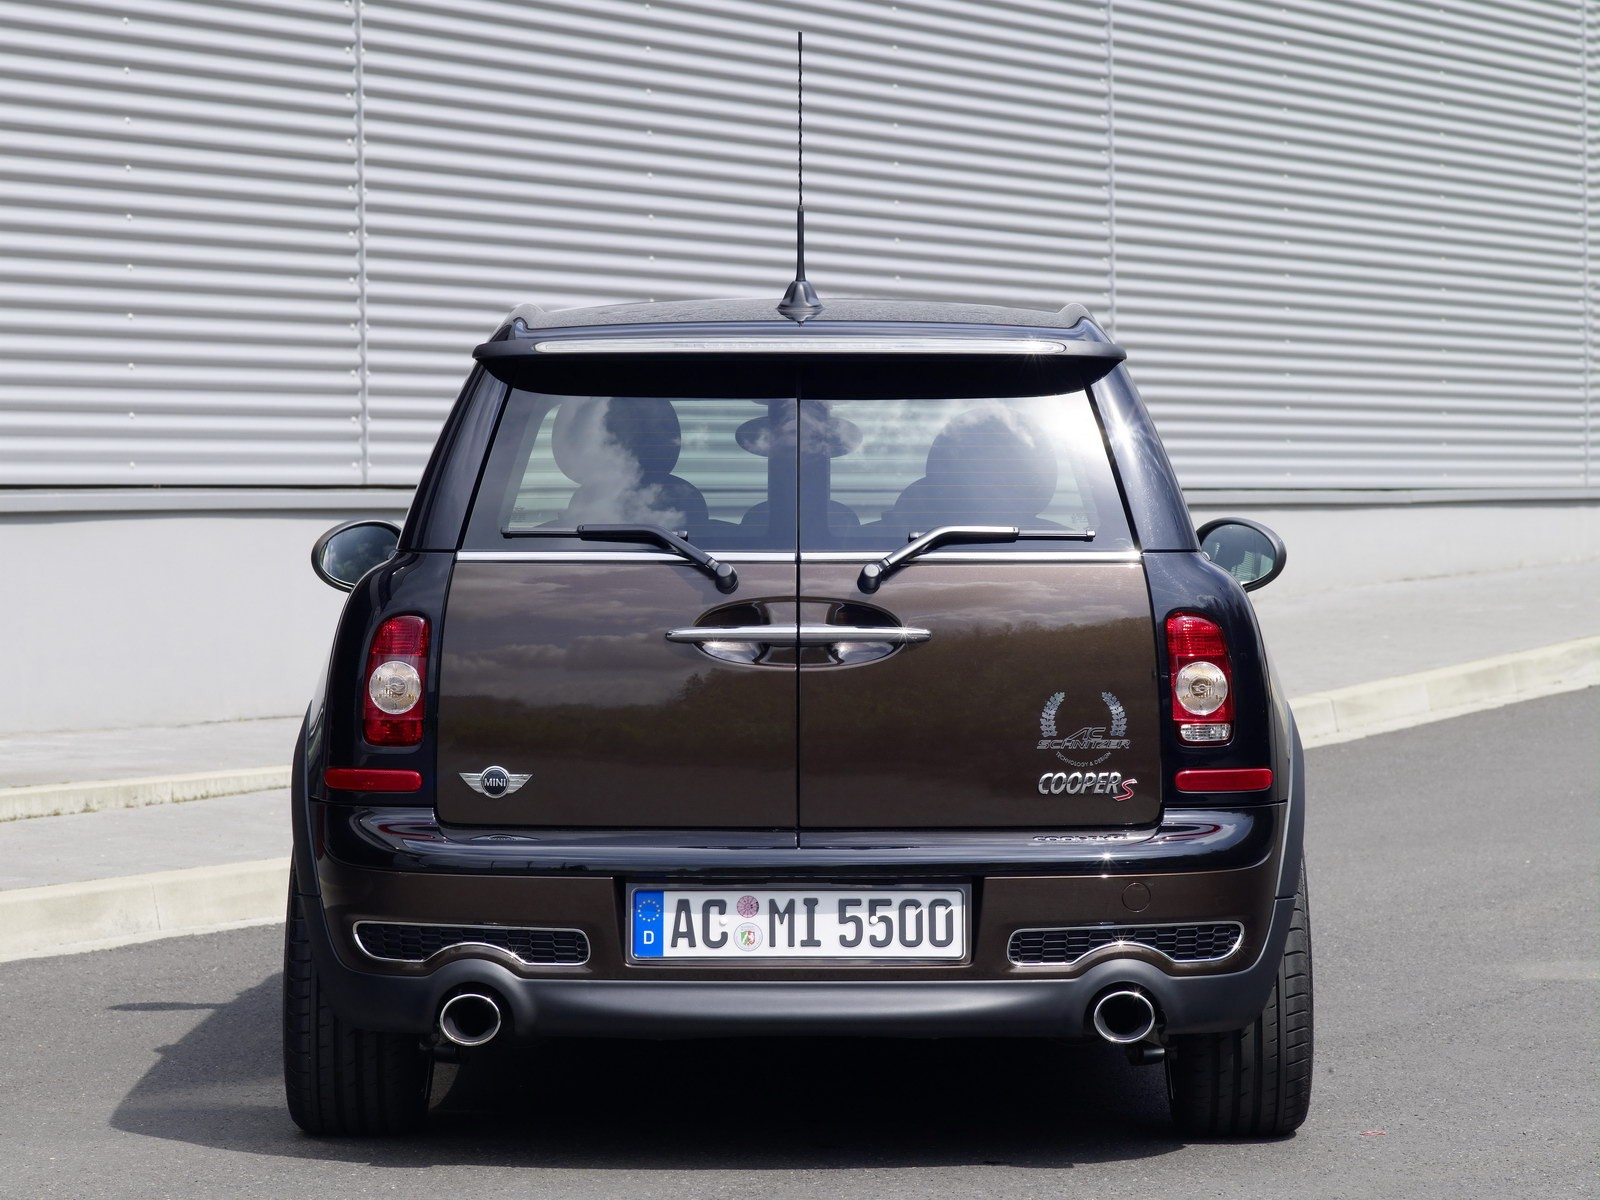 AC Schnitzer MINI Cooper S Clubman photos and wallpapers - tuningnews.